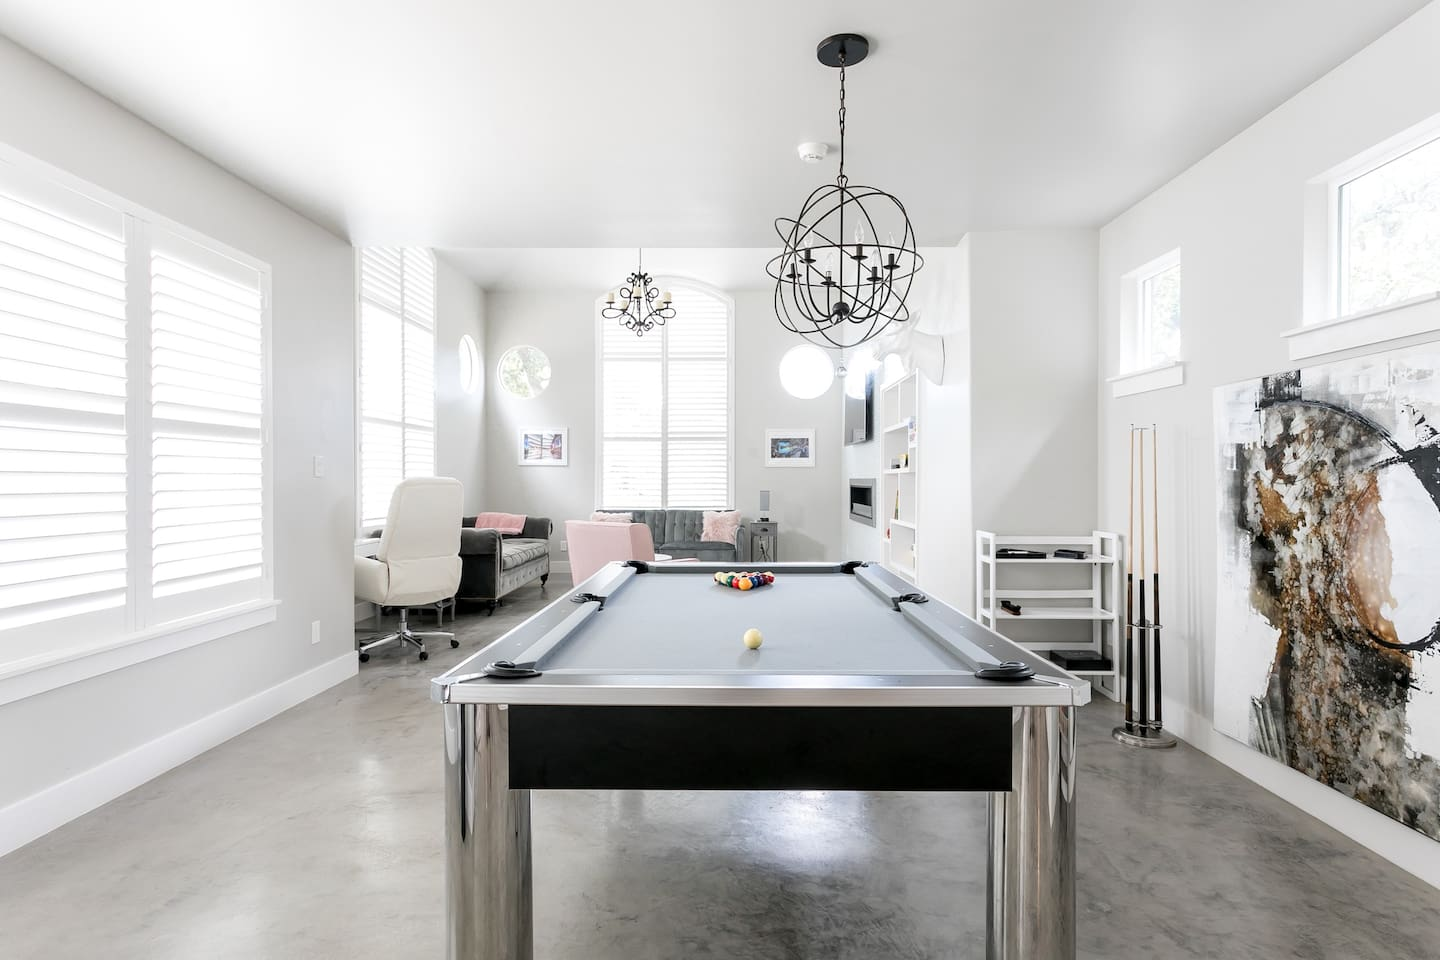 Beautiful contemporary 8ft pool table w/ polished concrete flooring throughout the downstairs.